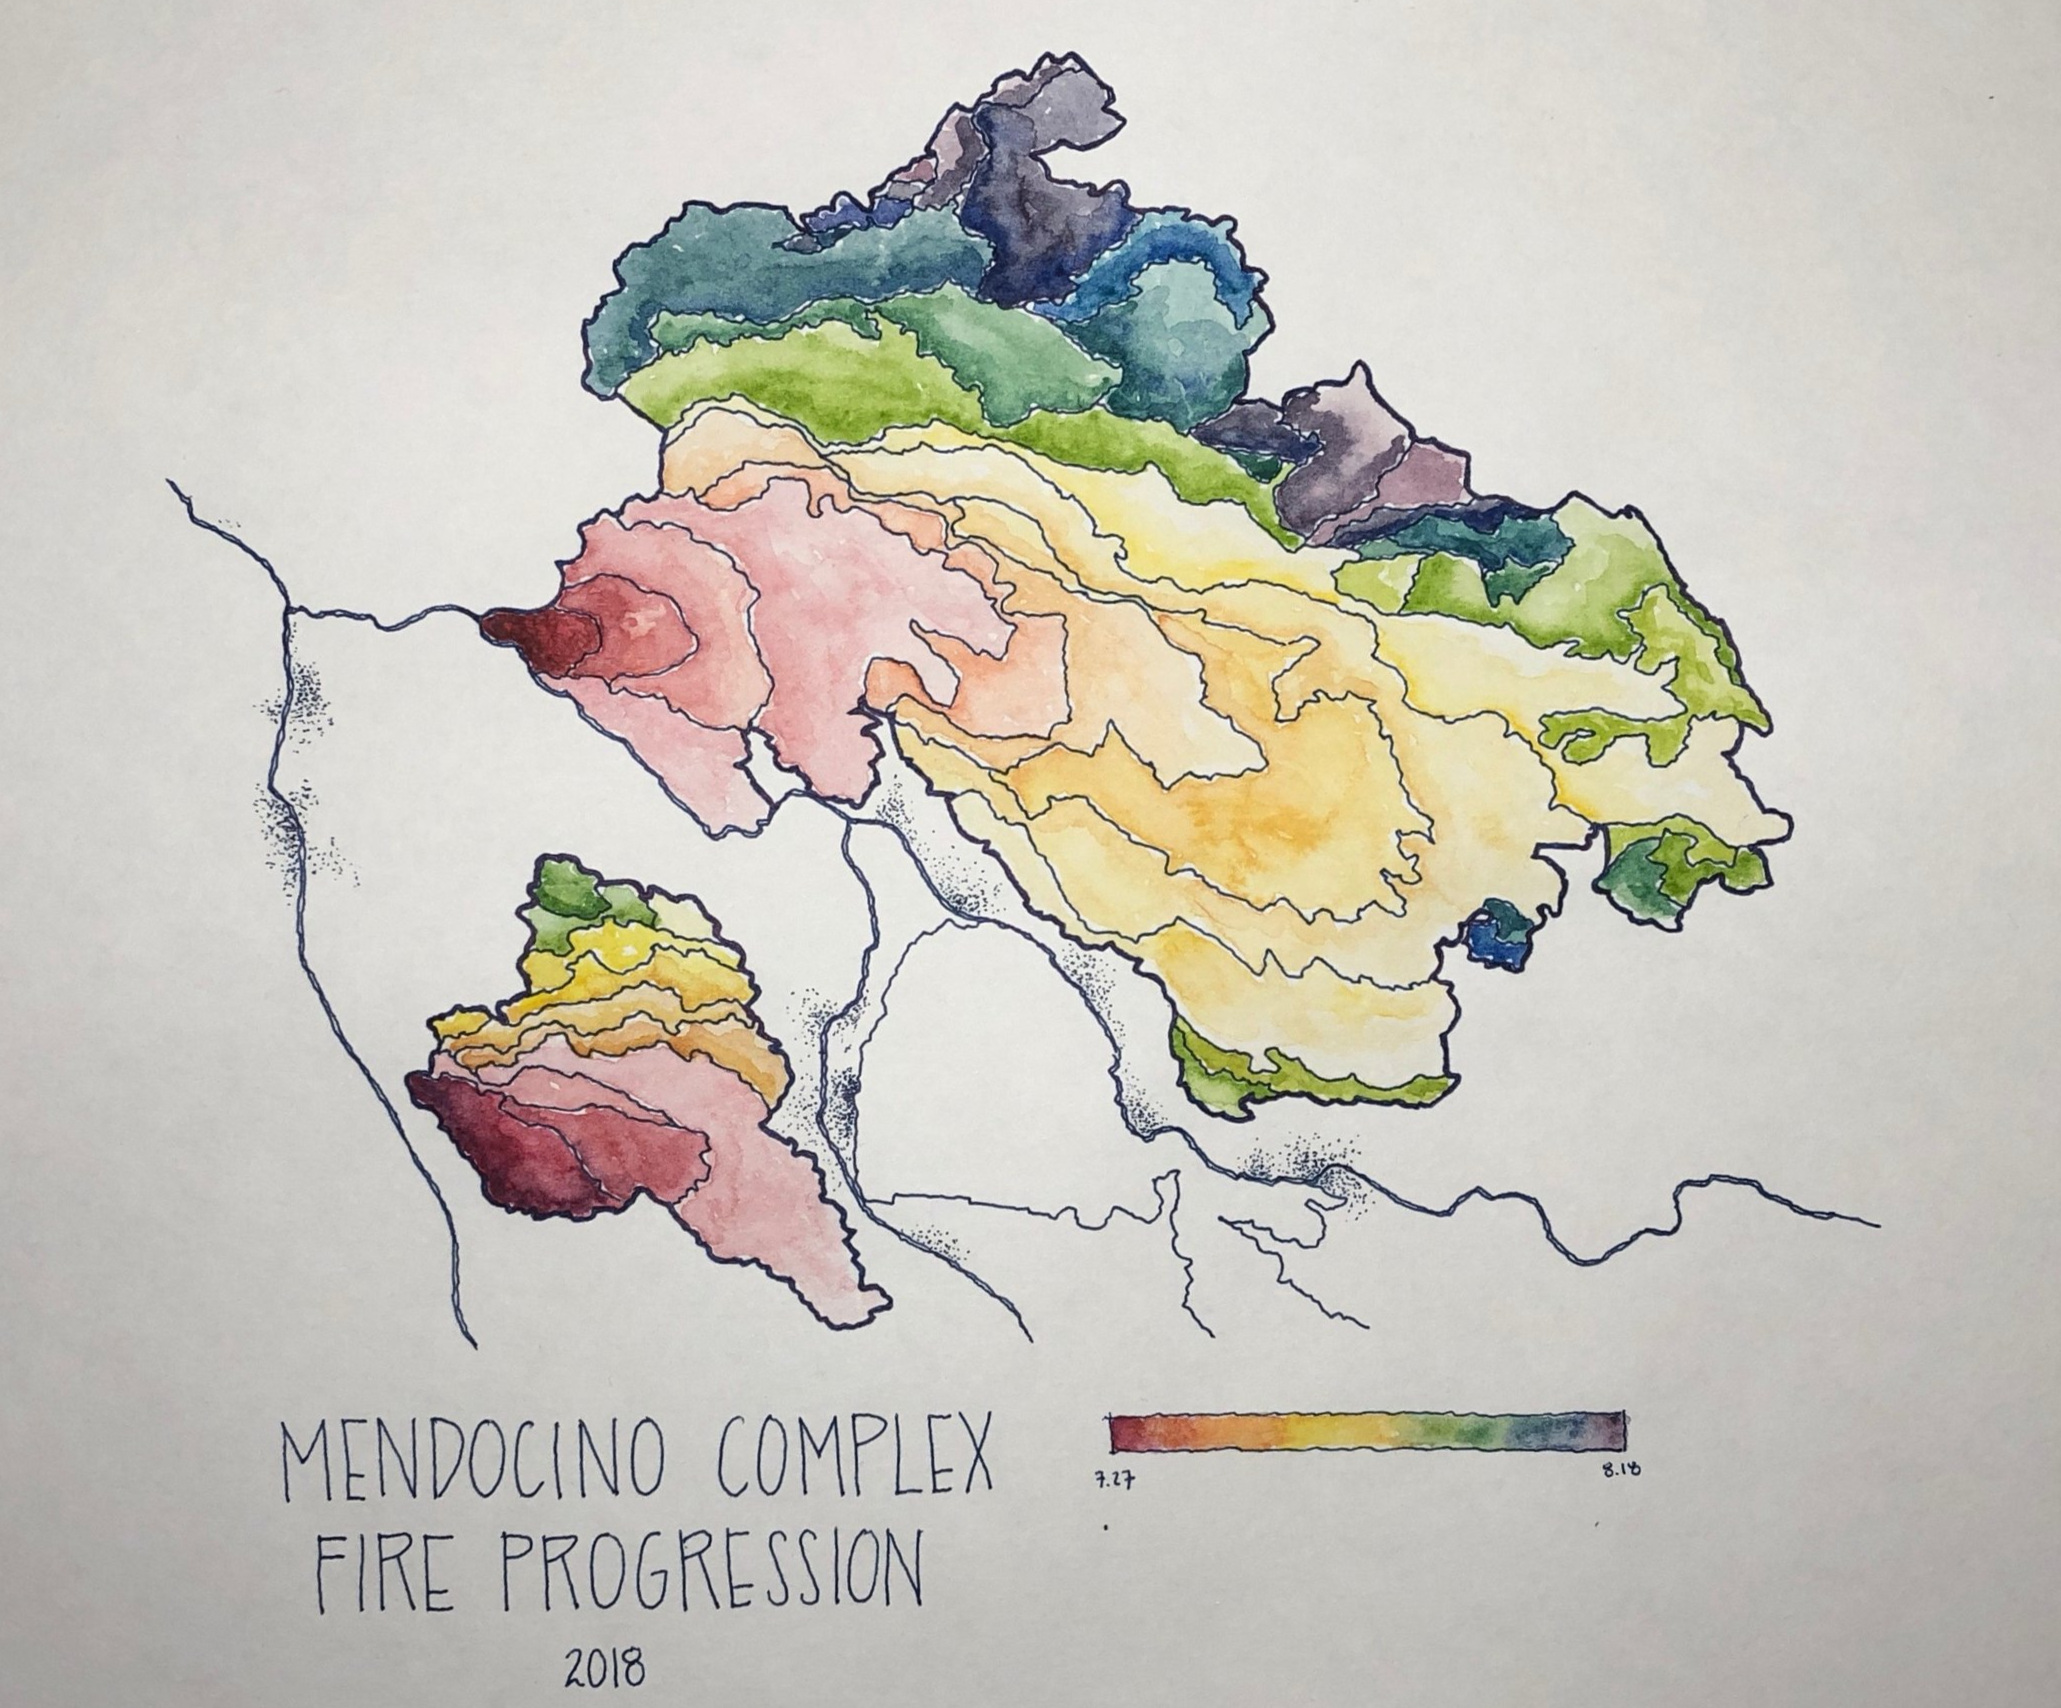 Roasted: Mendocino Complex Fire Progression. The Mendocino Complex Fire was the largest history recorded in California's history. This only shows the fire till mid-August. The fire was not fully contained till mid-September. Data from Inciweb.